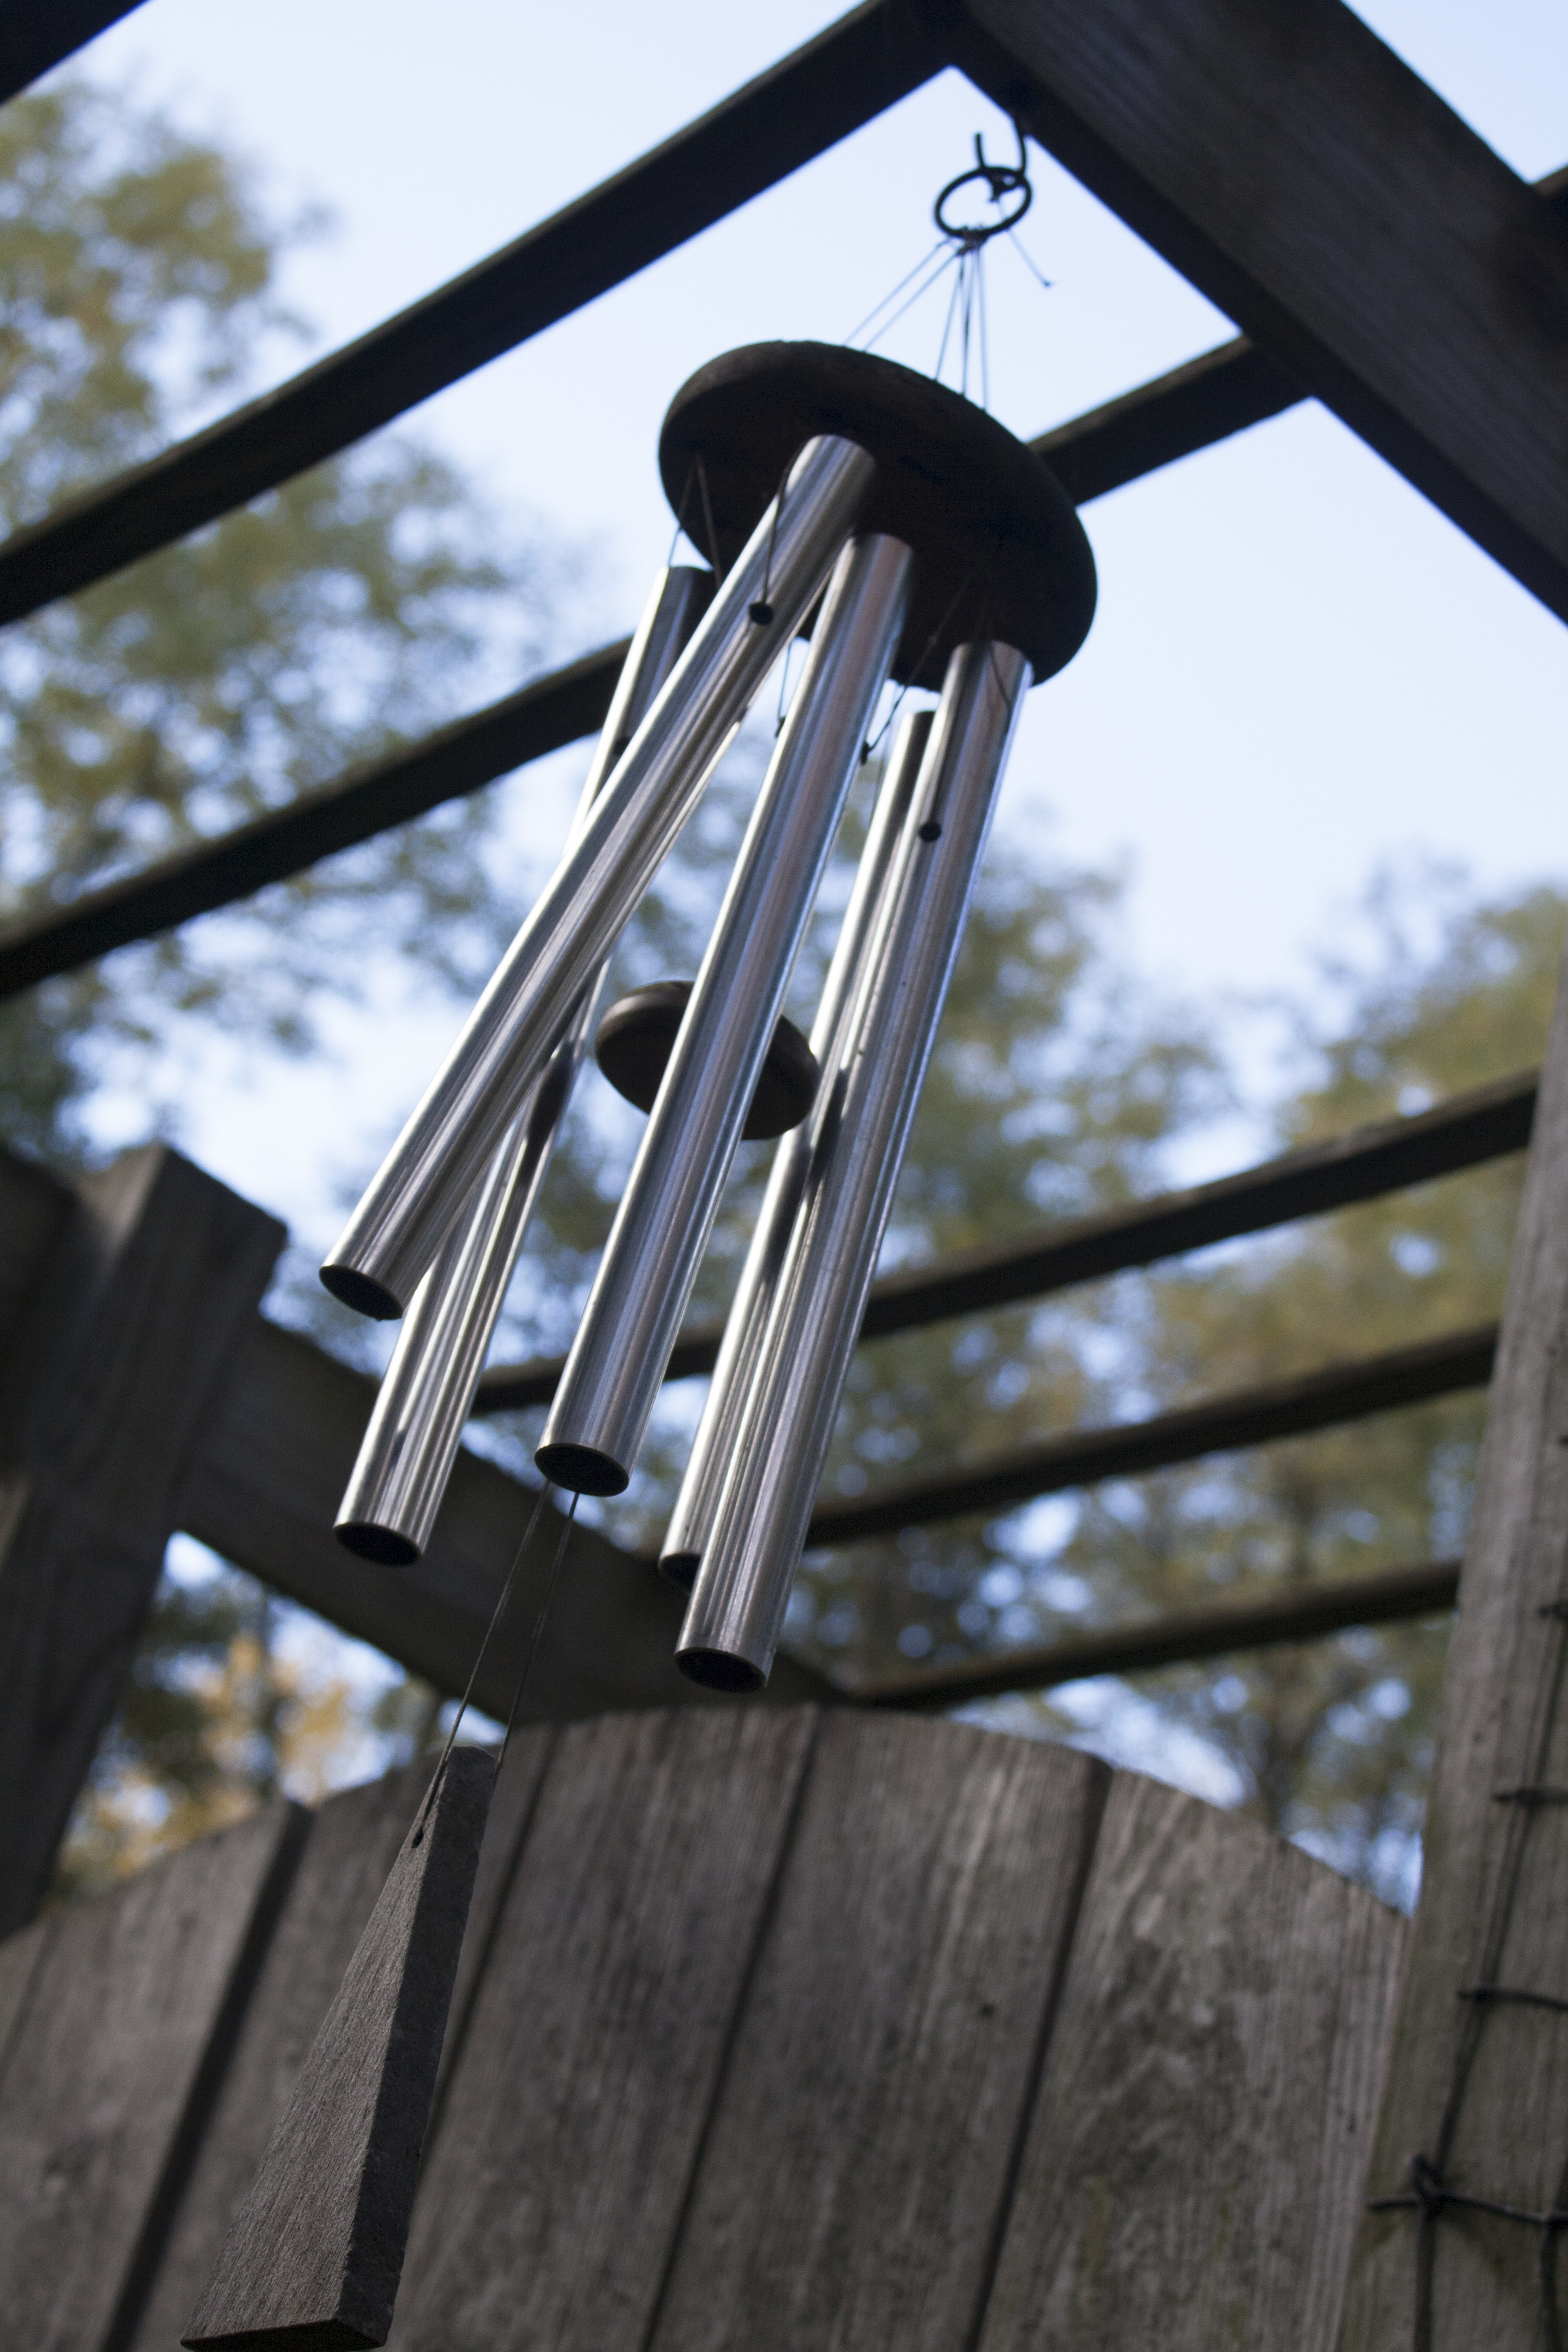 Chimes singing softly at the entrance made us feel right at home.